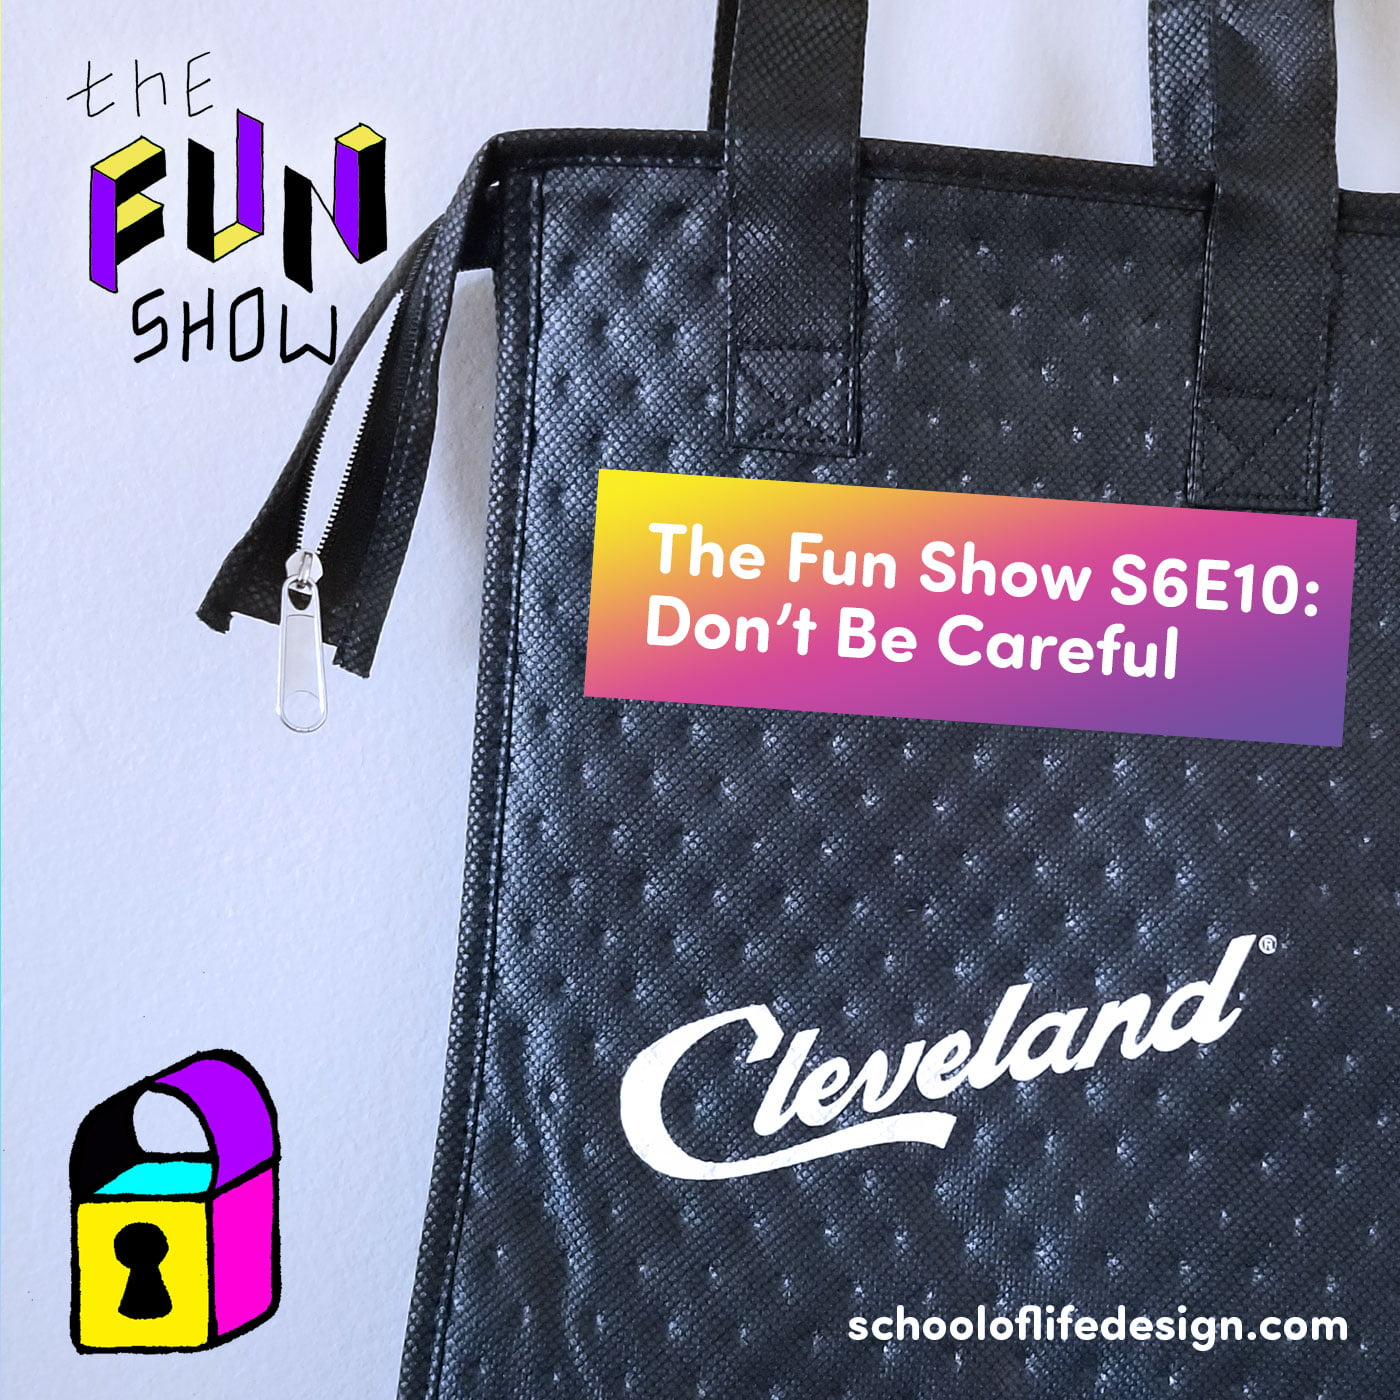 The Fun Show S6E10: Don't Be Careful